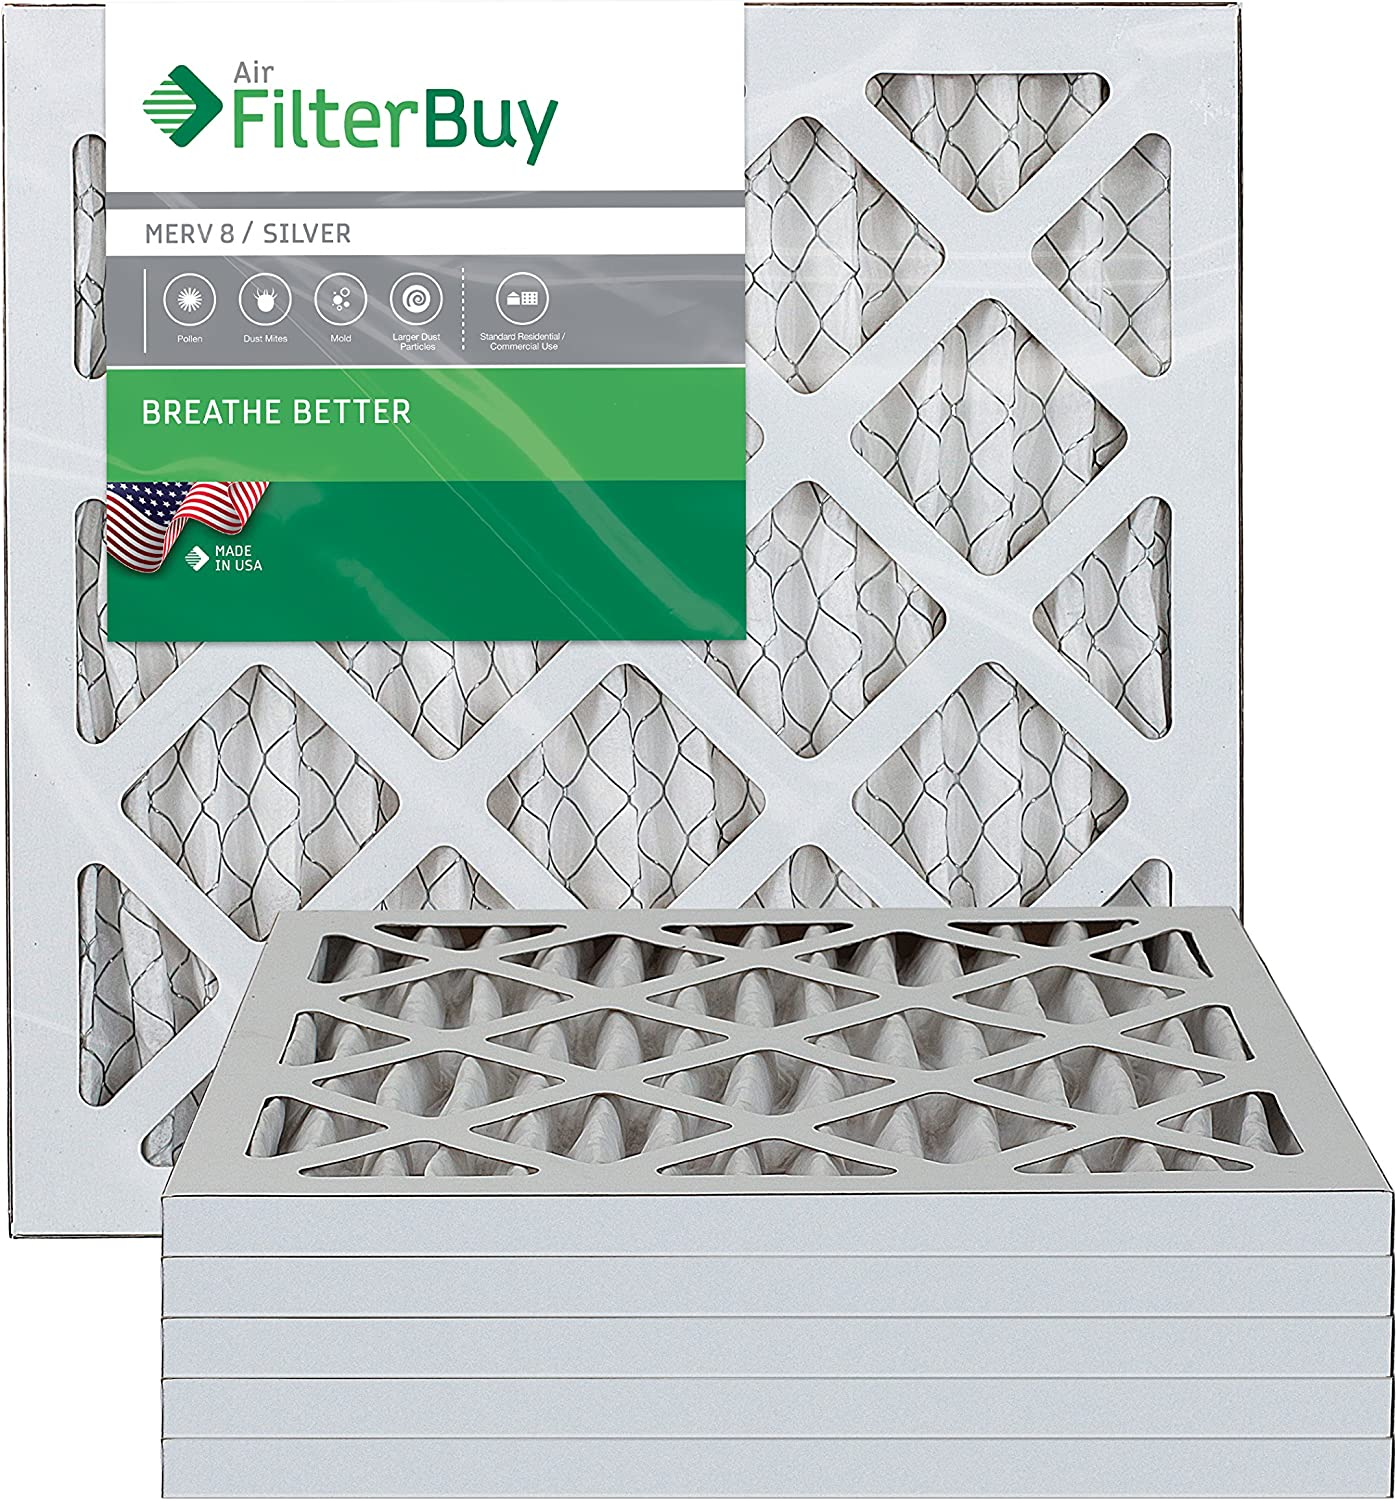 FilterBuy 12x12x1 MERV 8 Pleated AC Furnace Air Filter, (Pack of 6 Filters), 12x12x1 – Silver